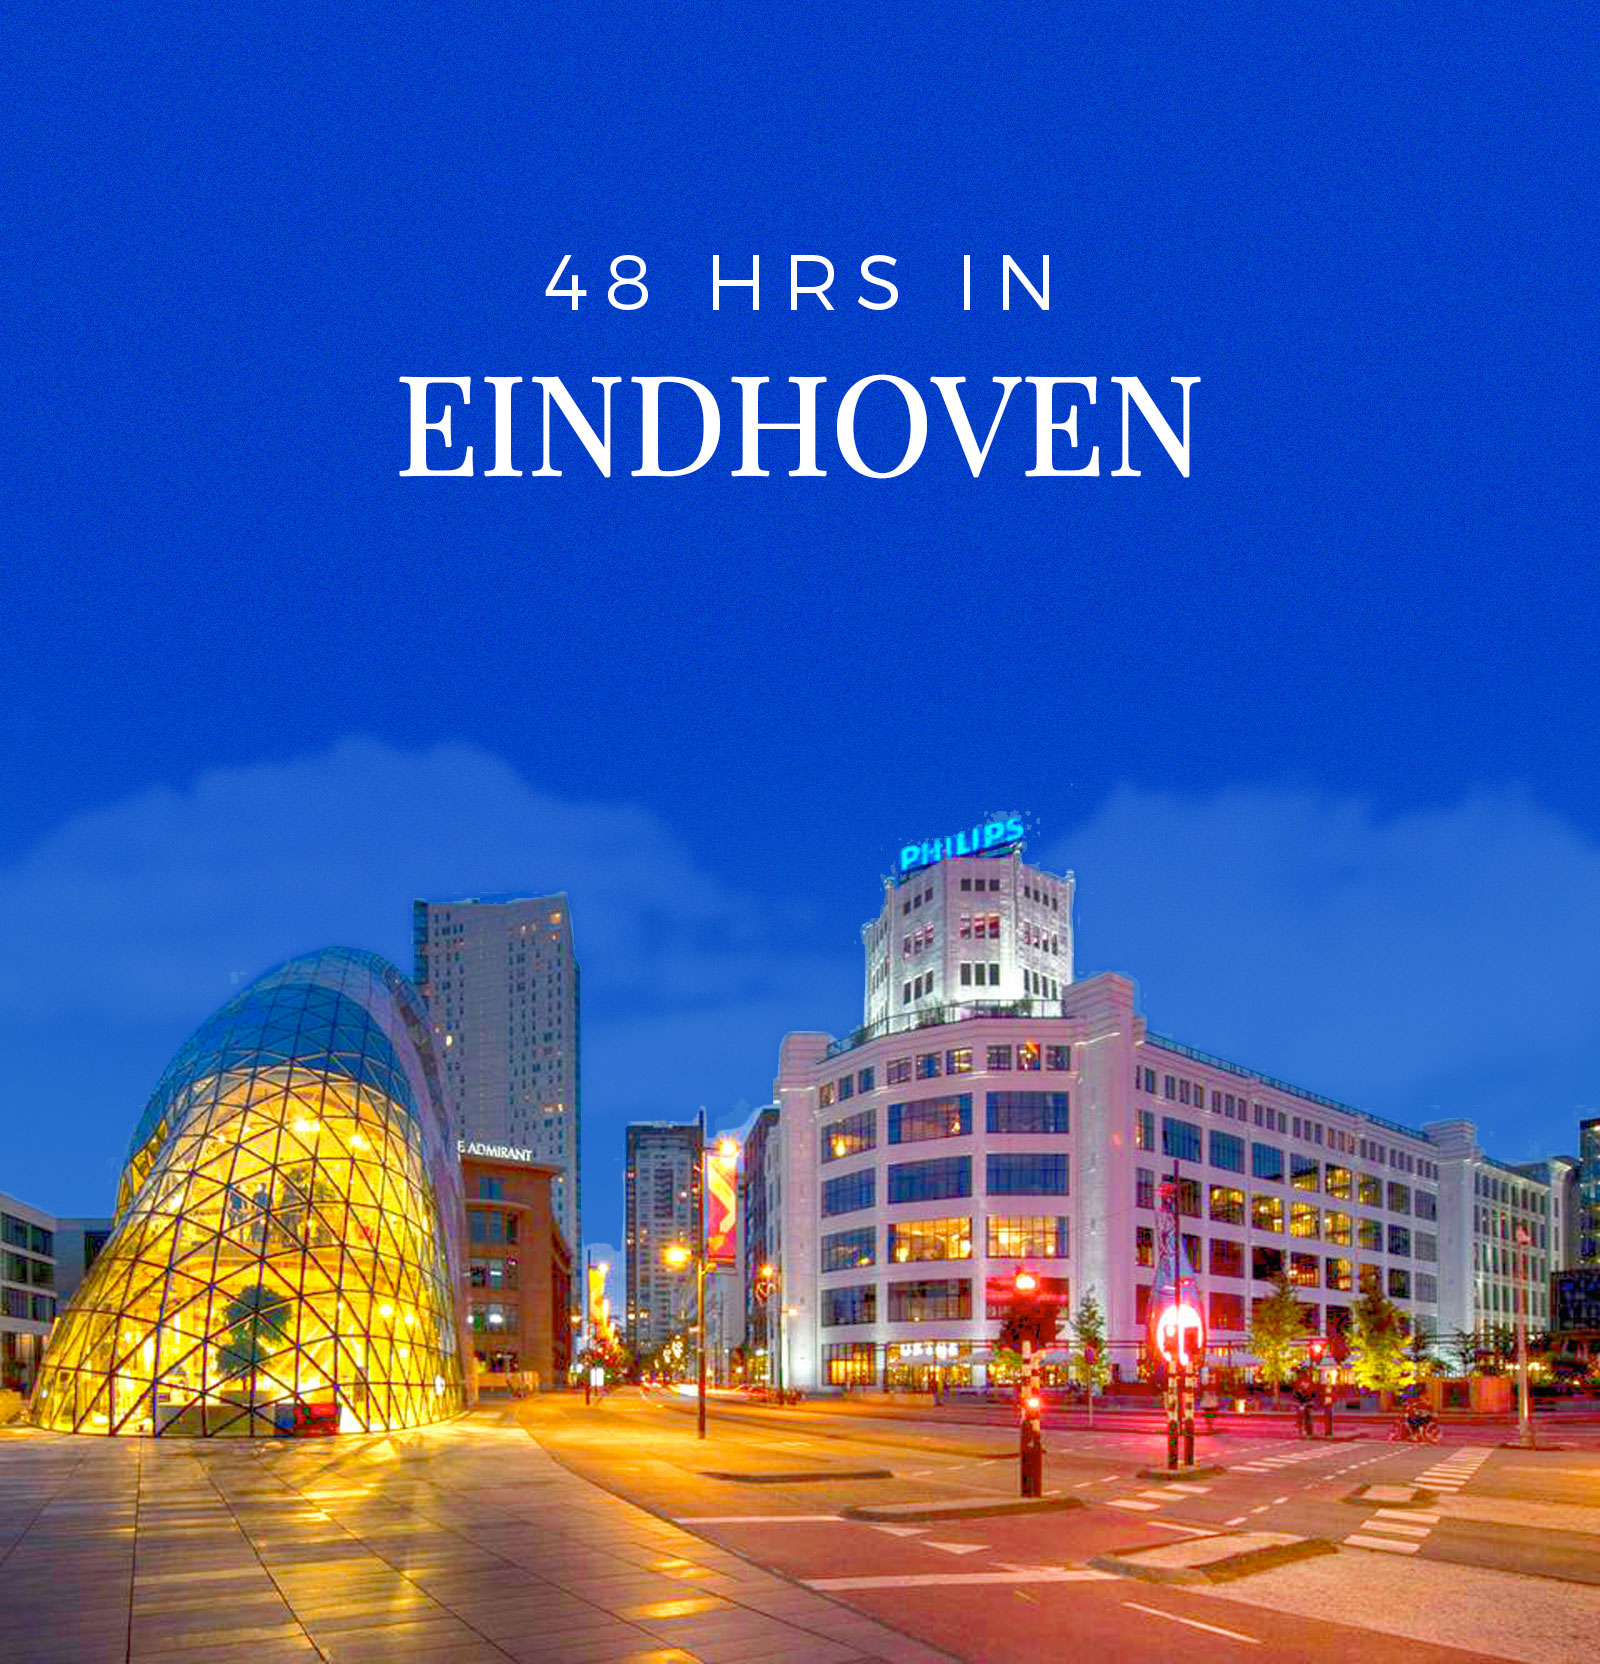 48 hrs in Eindhoven